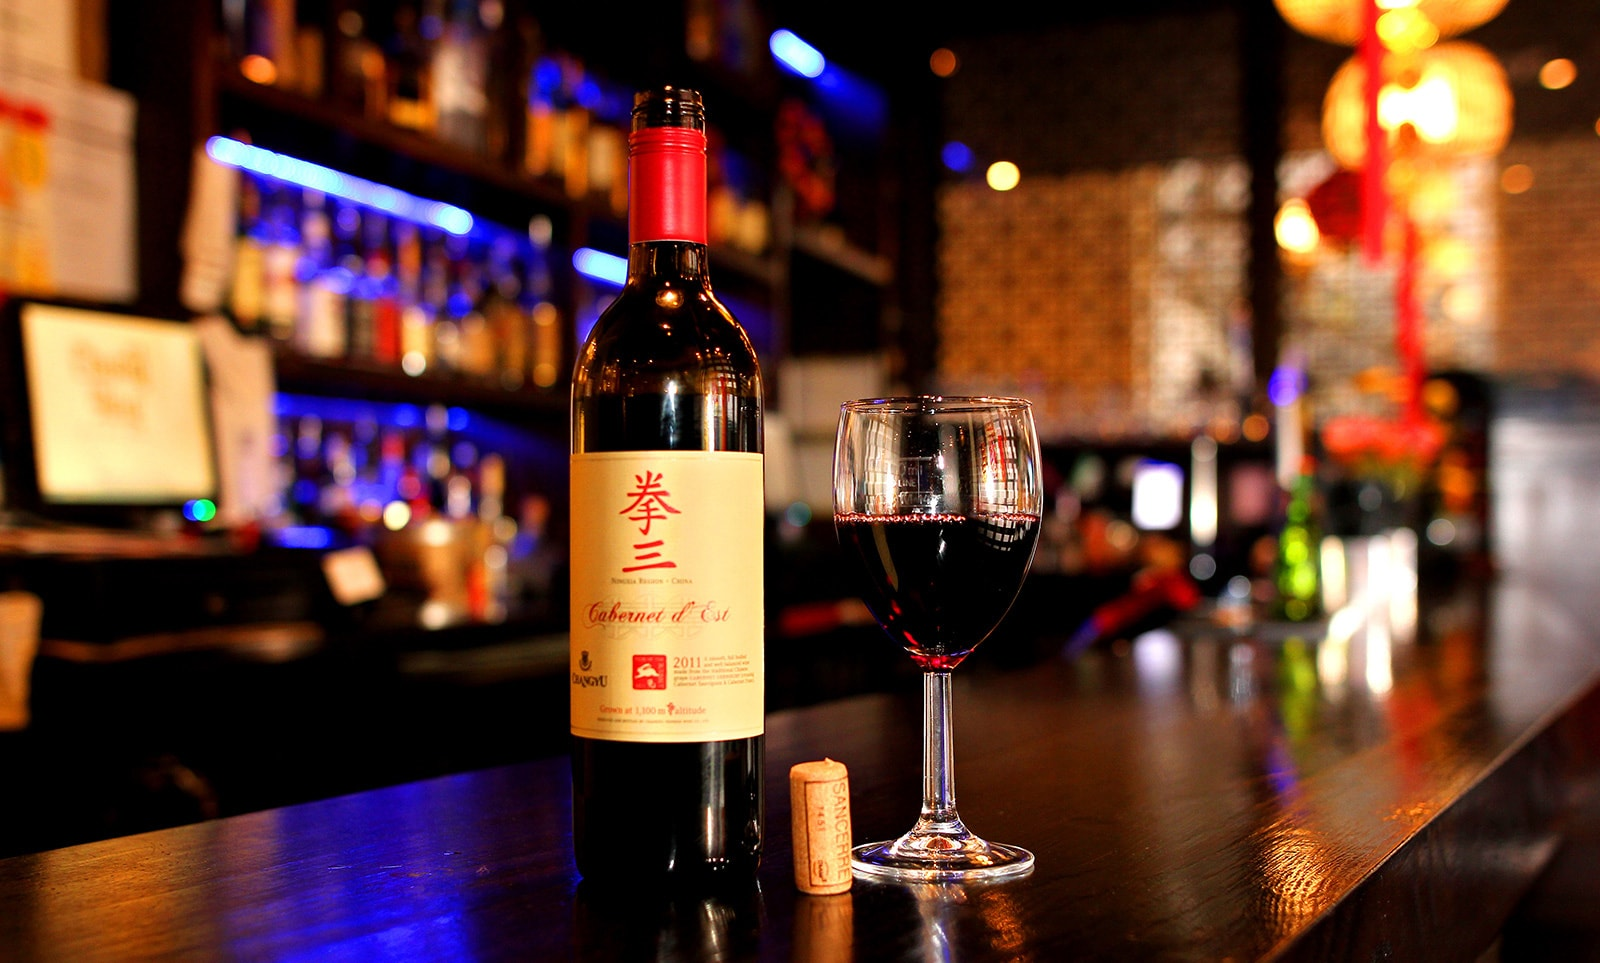 Changyu Cabernet D'est - Chinese Wine